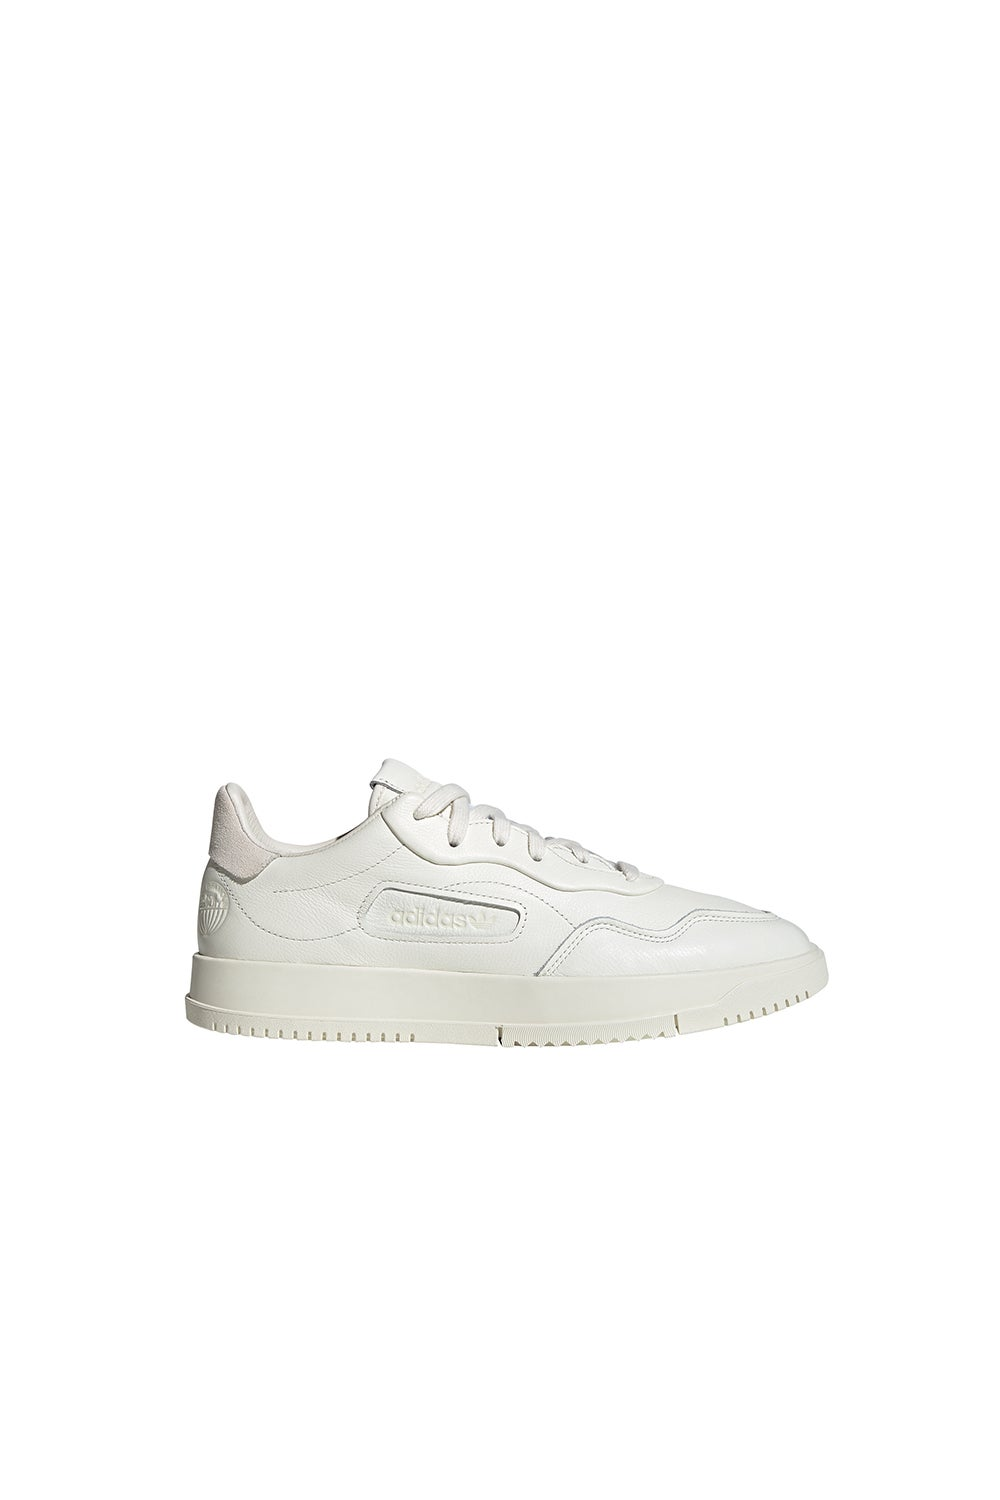 adidas SC Premiere Shoes Off White